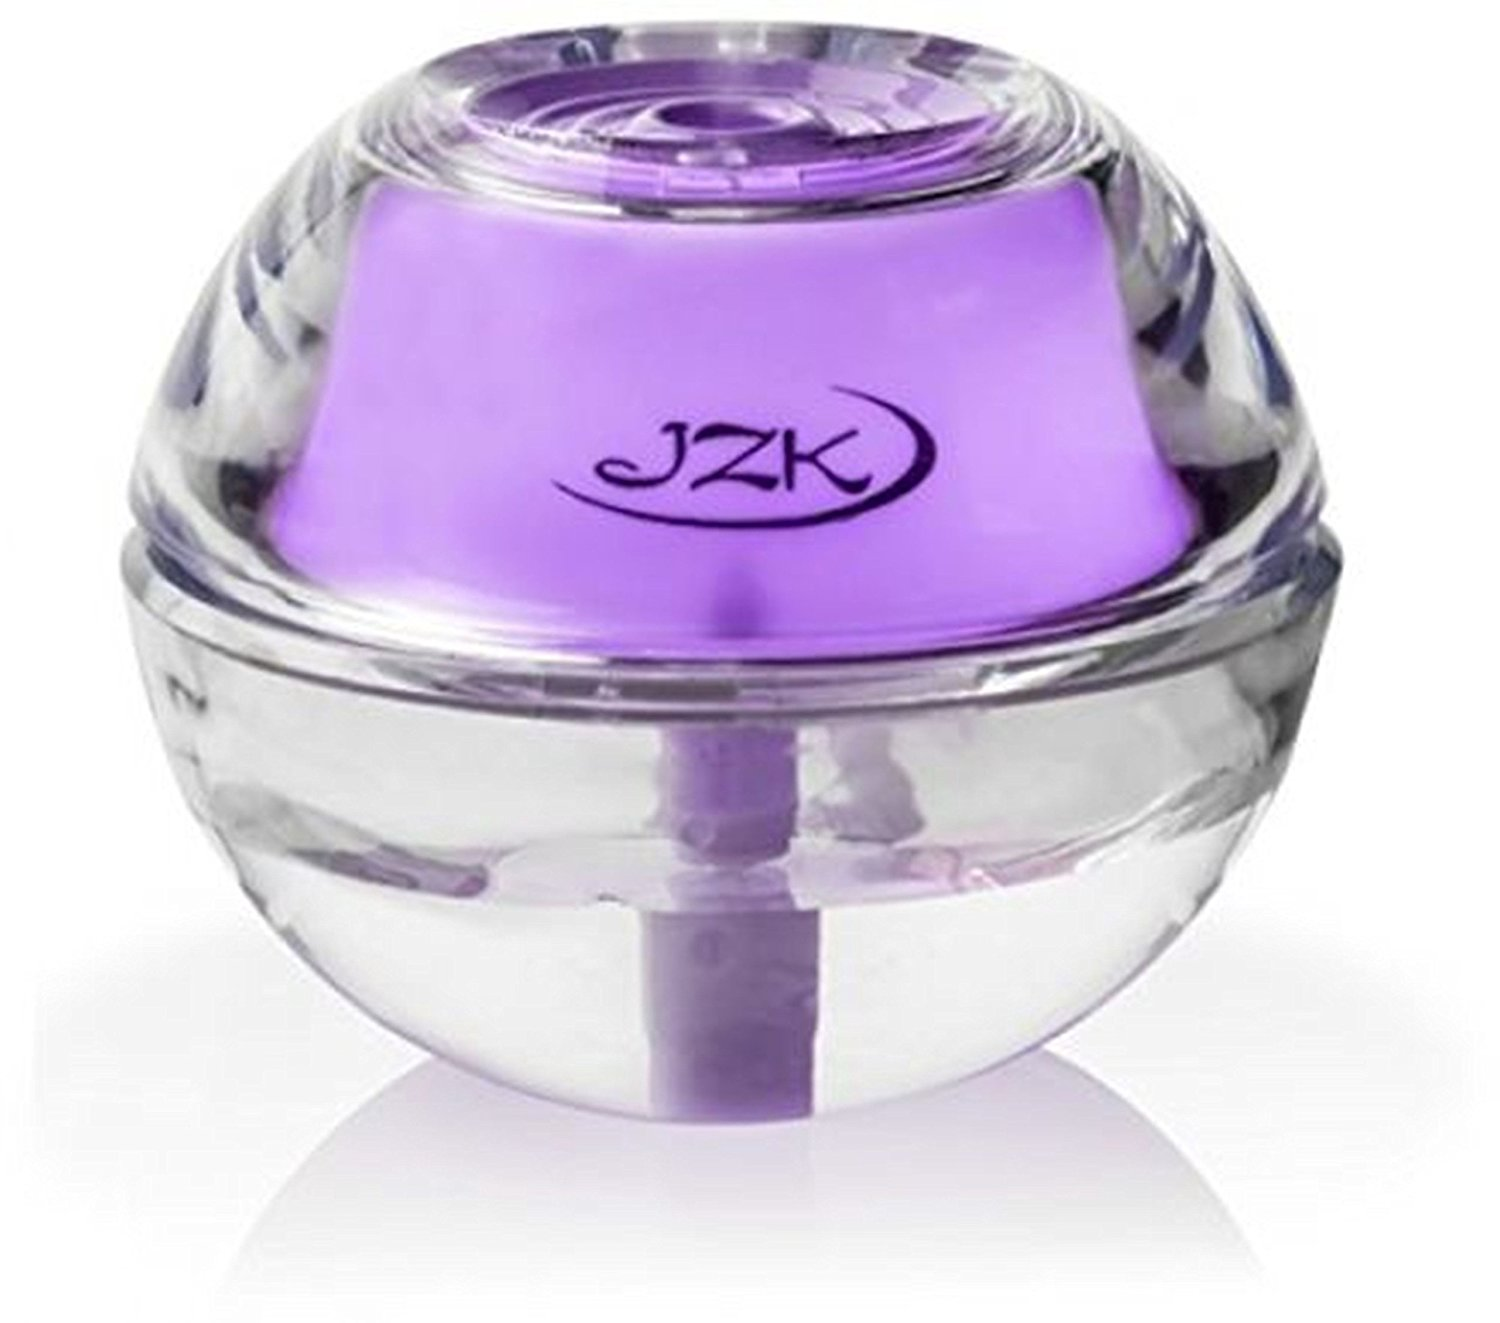 Jzk 1 Mini Portable Home Work And Travel Humidifier